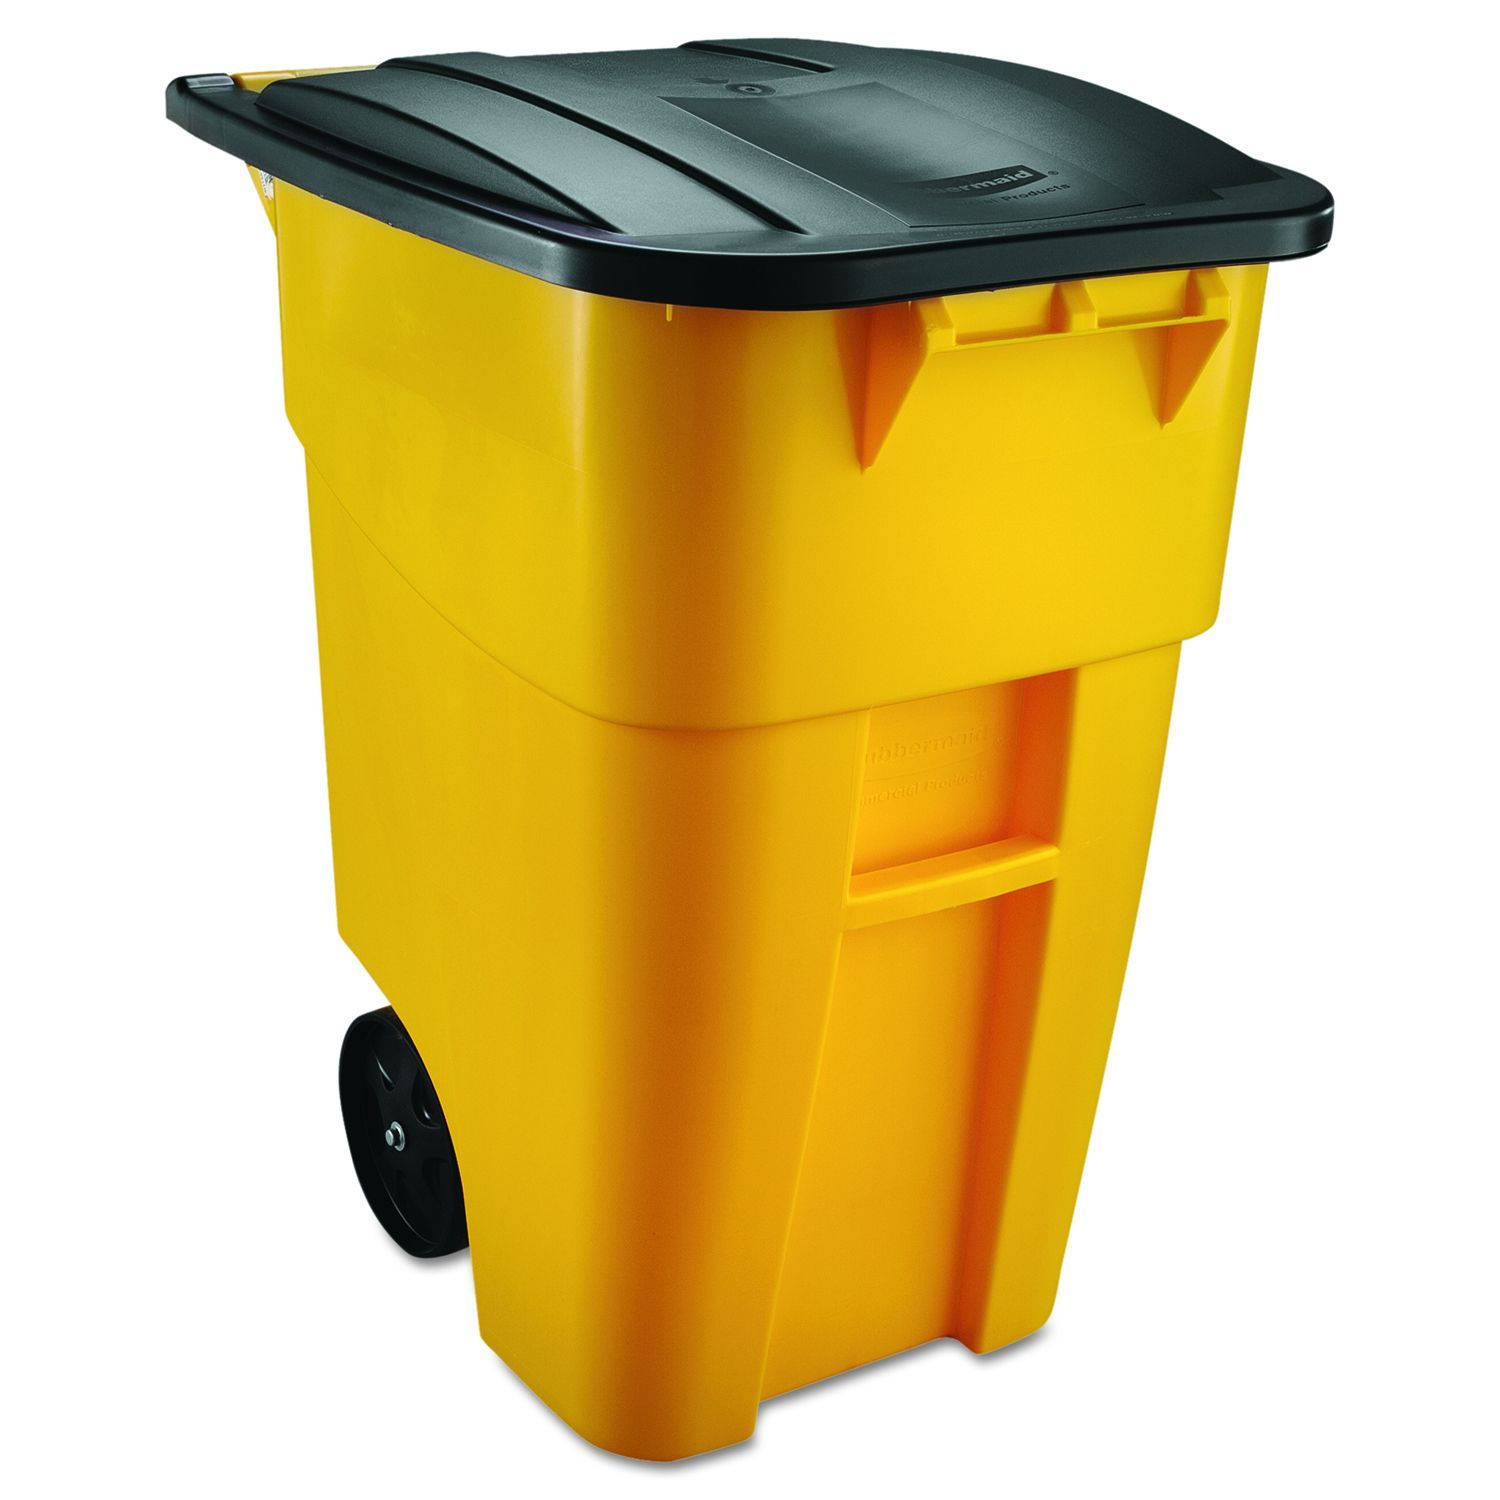 Garbage Bins Walmart Rubbermaid Commercial Yellow 50 Gal Brute Rollout Plastic